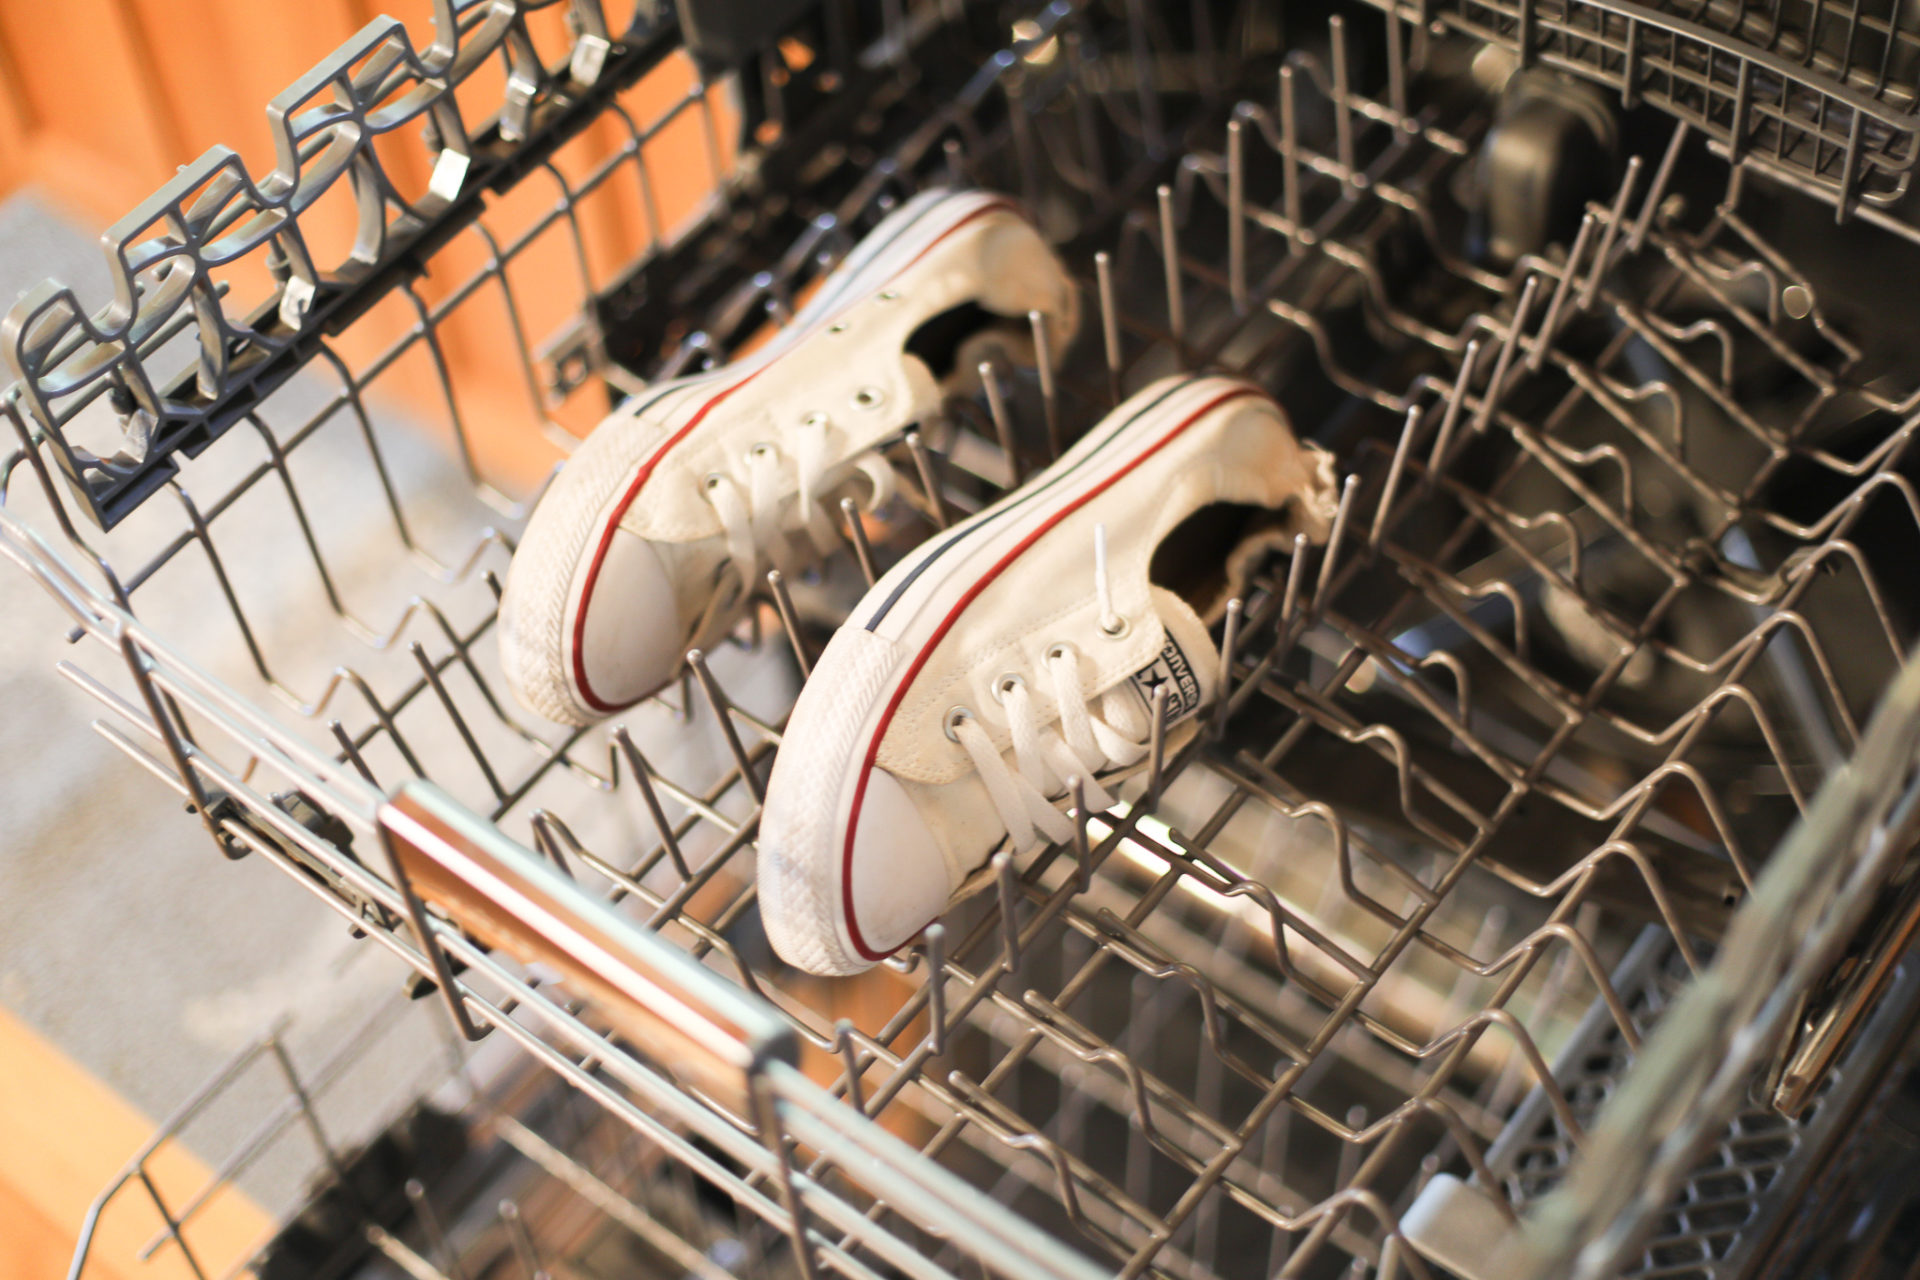 converse in dishwasher